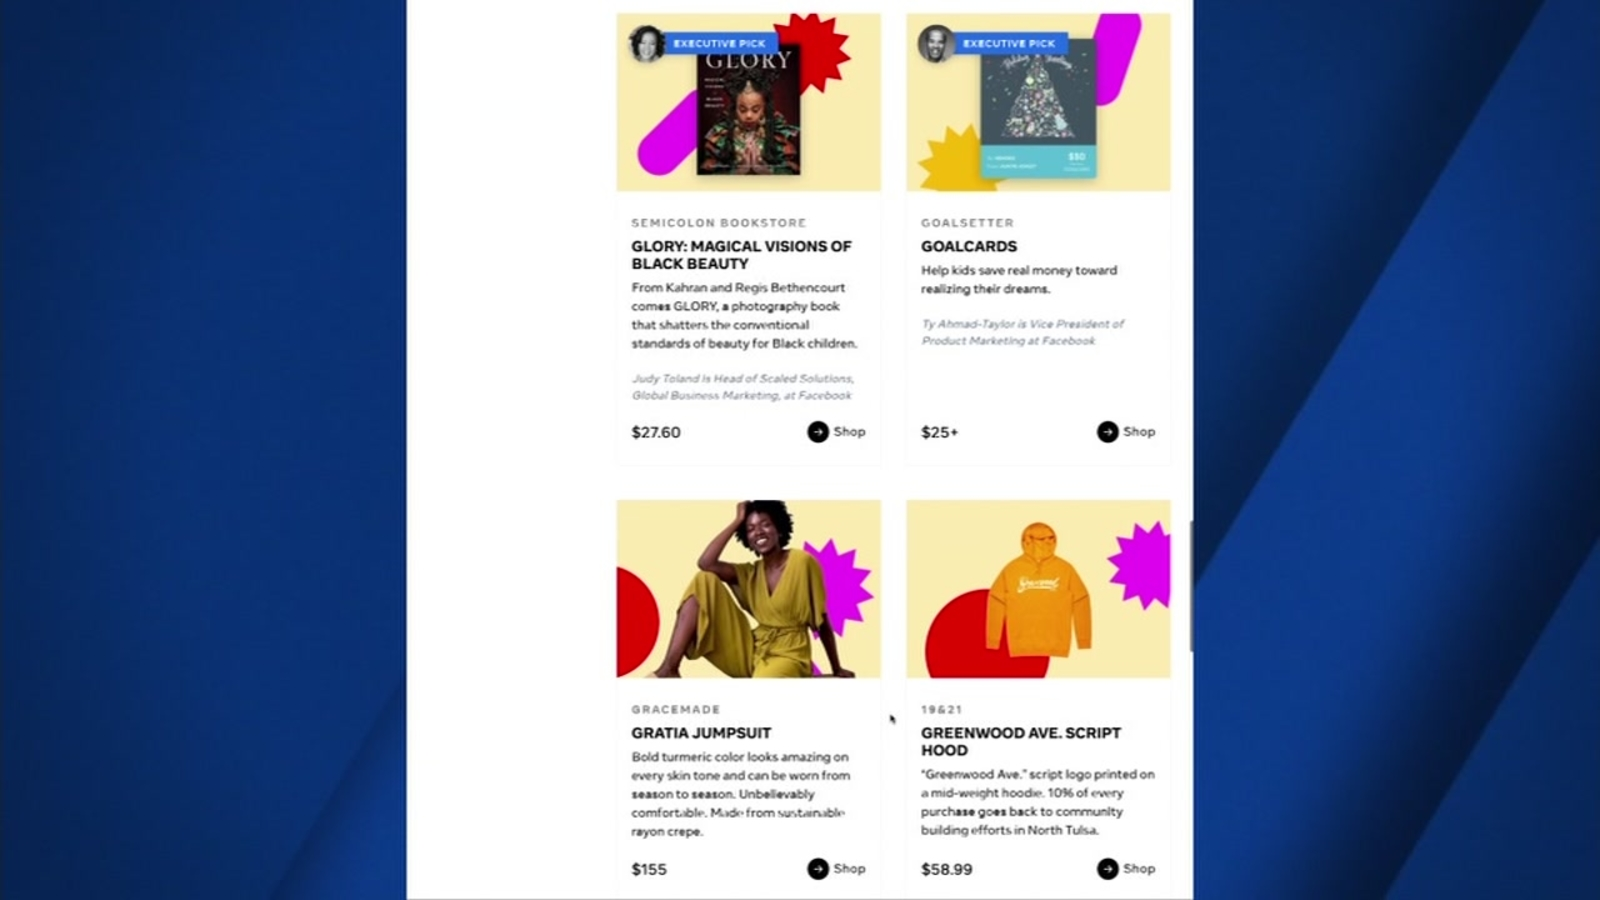 Facebook Launches Buy Black Friday Initiative Holiday Gift Guide To Support Black Owned Small Businesses 6abc Philadelphia